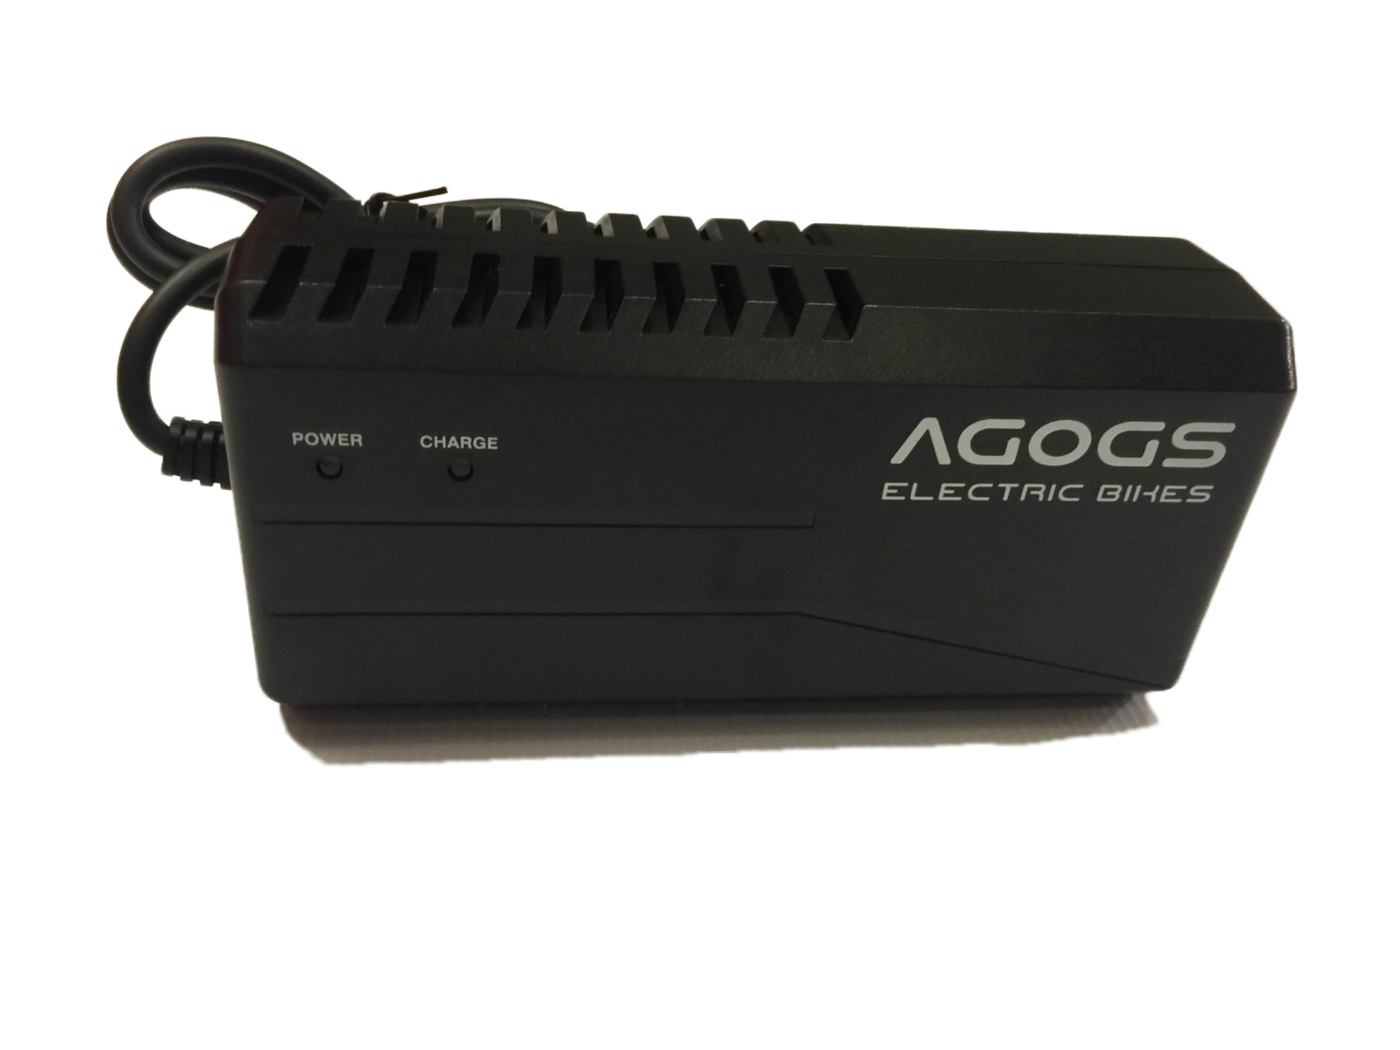 Fast-charger AGOGS 36V/3A